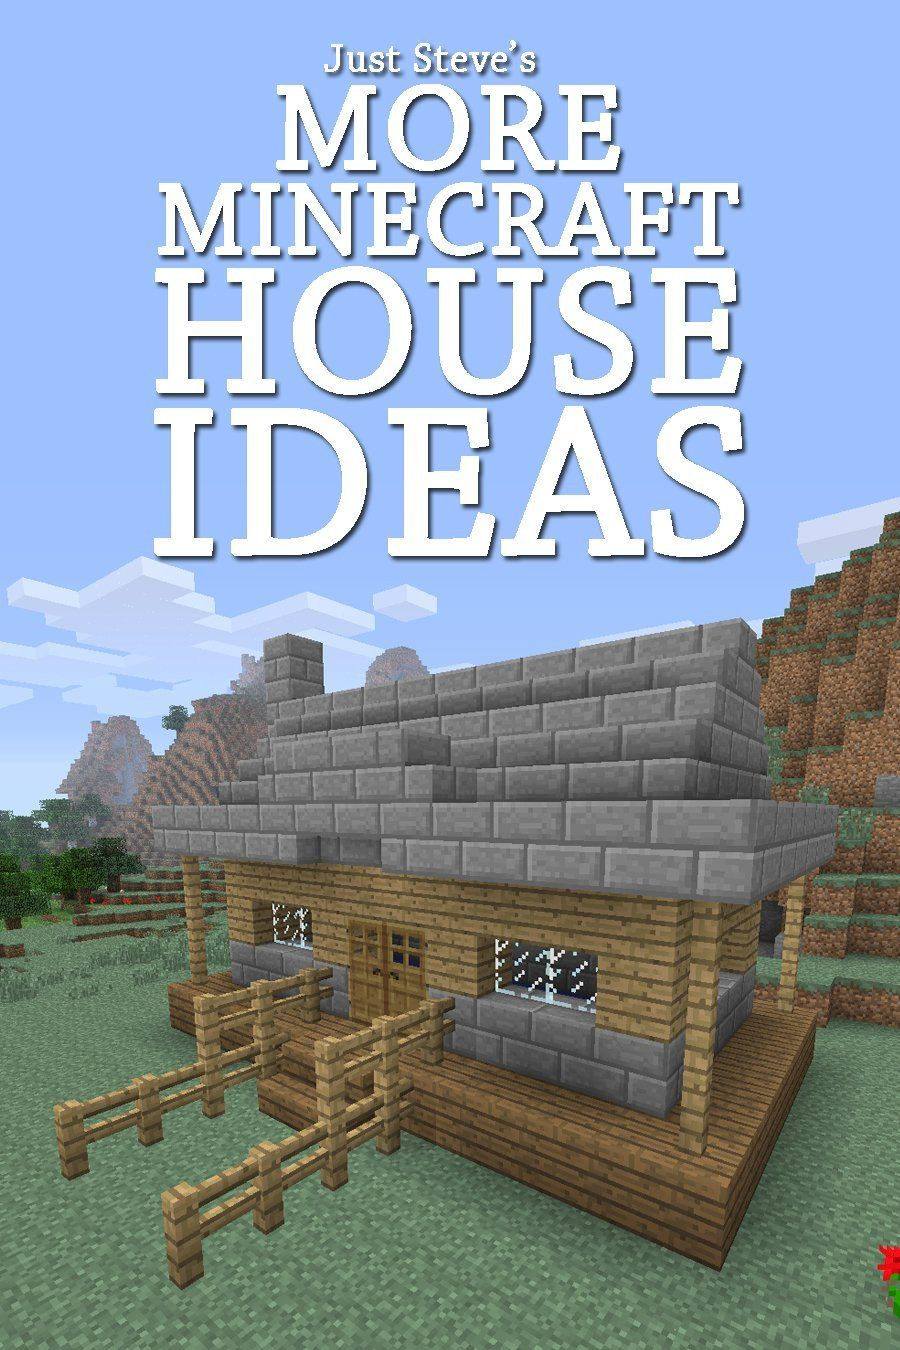 More minecraft house ideas a collection of house ideas and more minecraft house ideas a collection of house ideas and blueprints in this minecraft house guide malvernweather